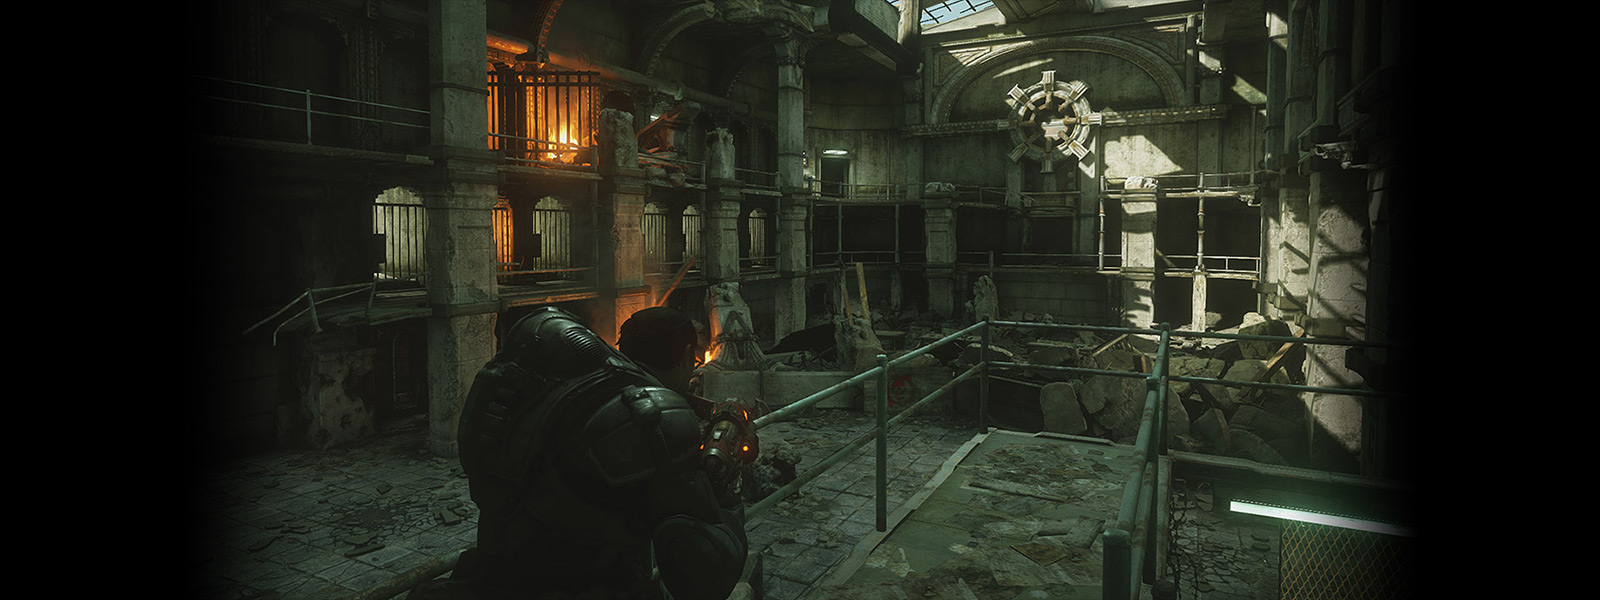 Remastered version scene with Marcus Fenix looking on a slab map interior